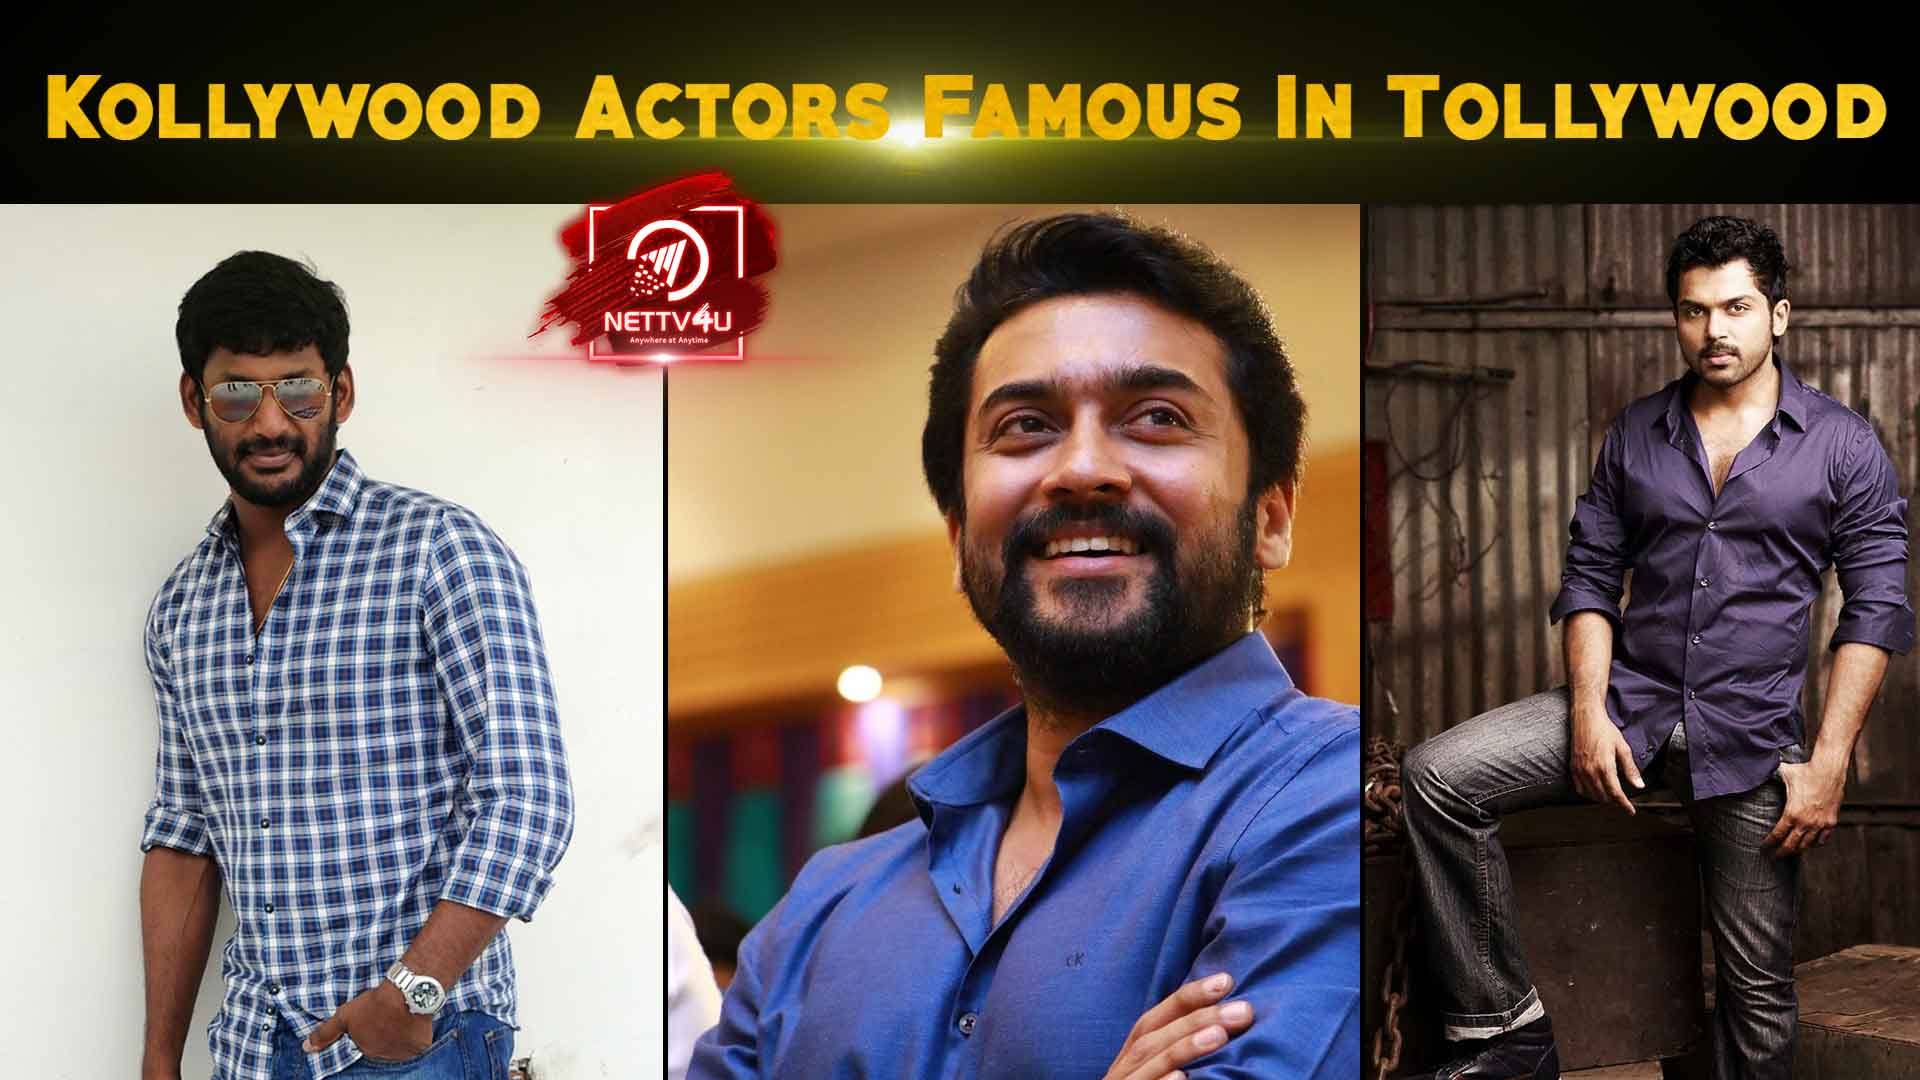 Kollywood Actors Famous In Tollywood